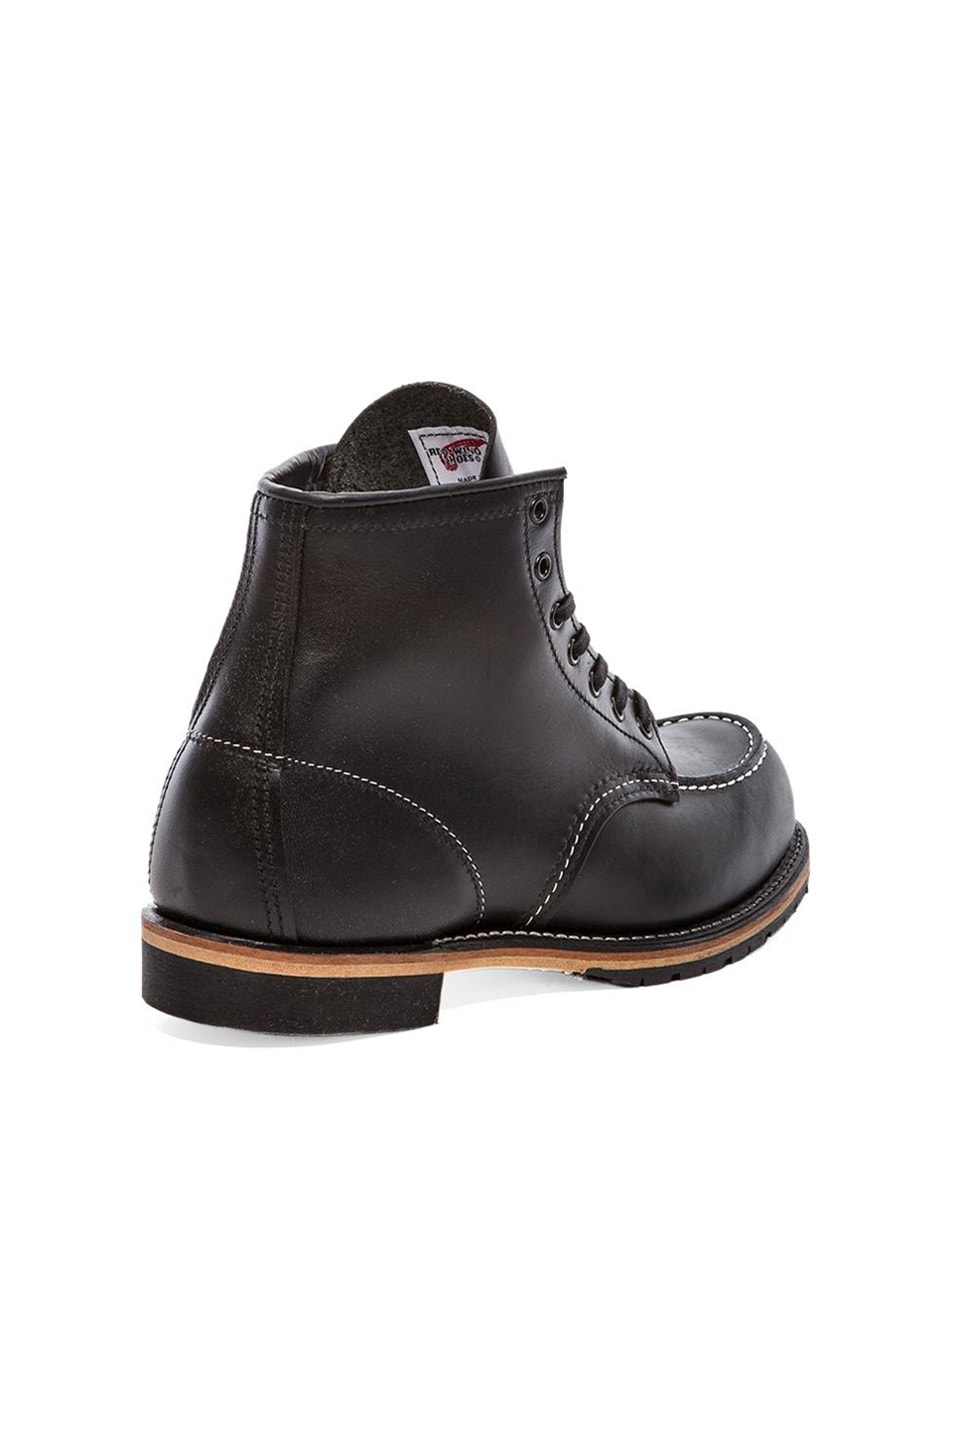 "Red Wing Shoes Beckman 6"" Classic Moc in Black Featherstone"